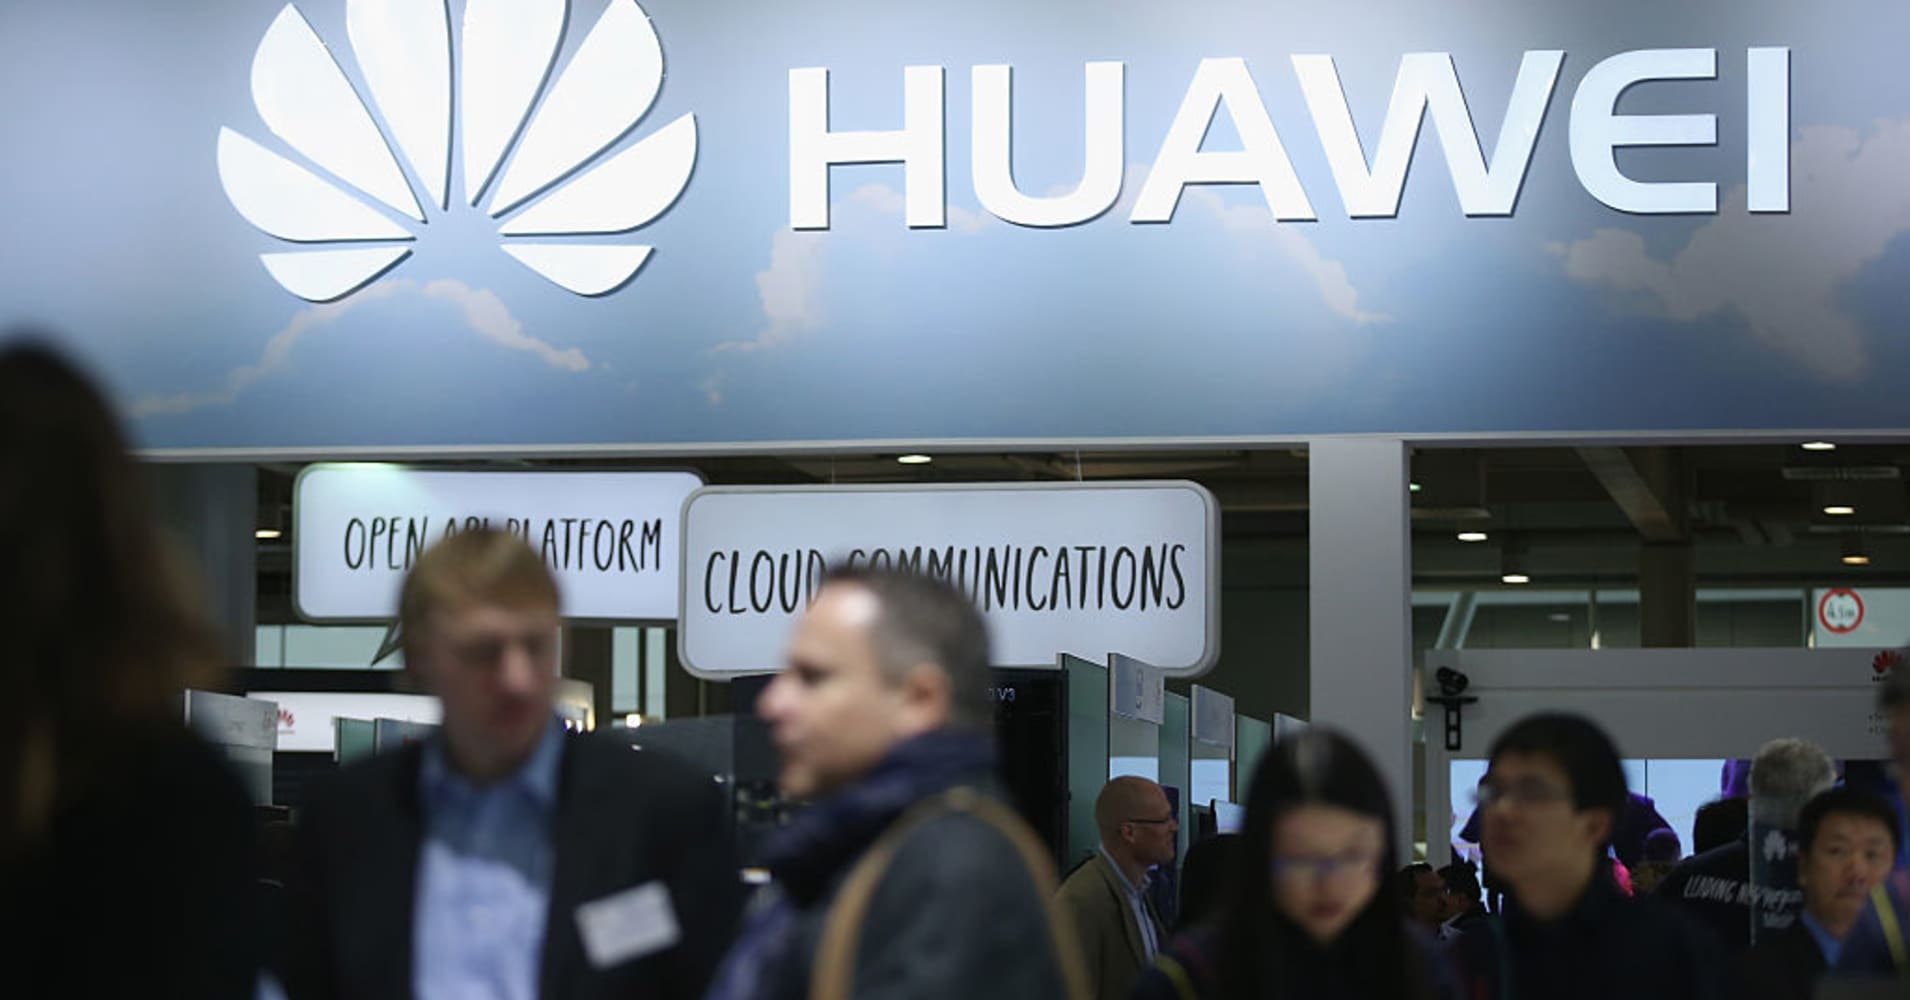 As Huawei faces trouble in the West, it could find solace in India